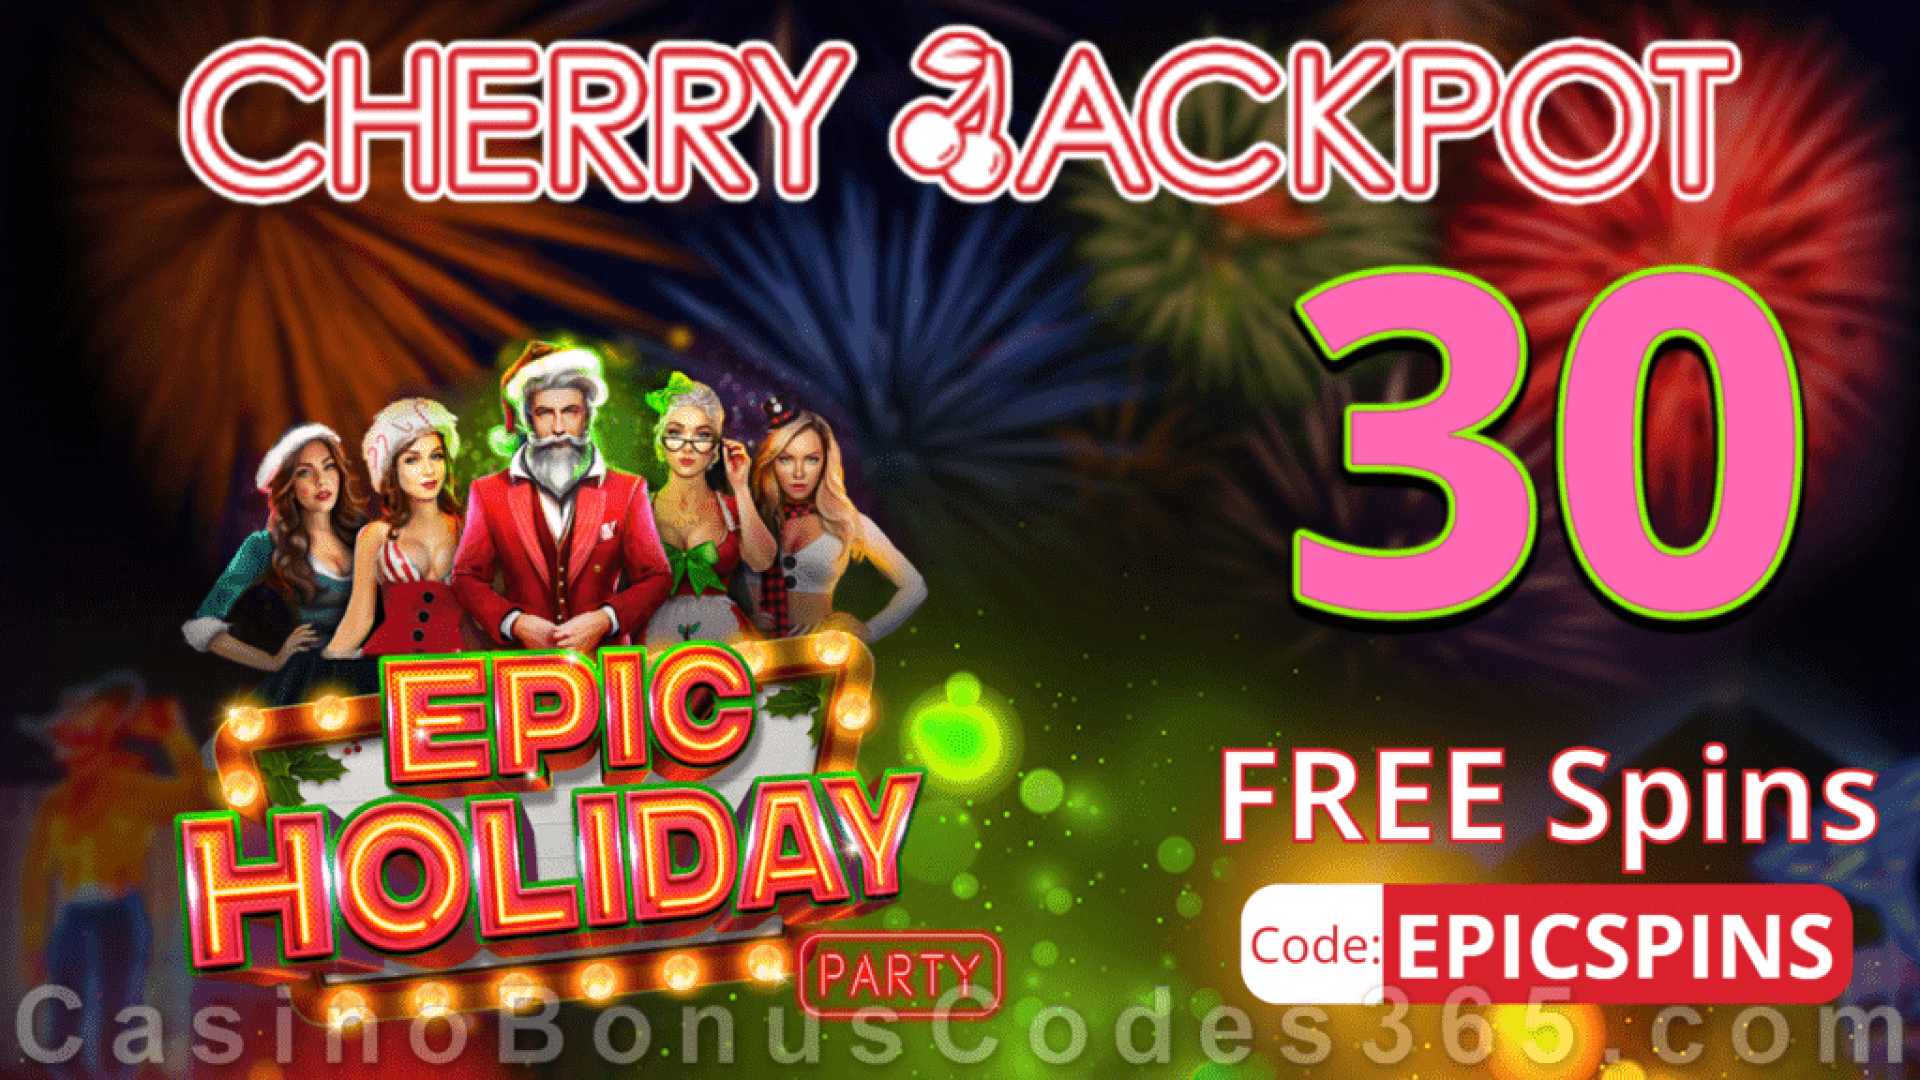 Cherry Jackpot 30 FREE Spins on Epic Holiday Party New RTG Game No Deposit Special Deal